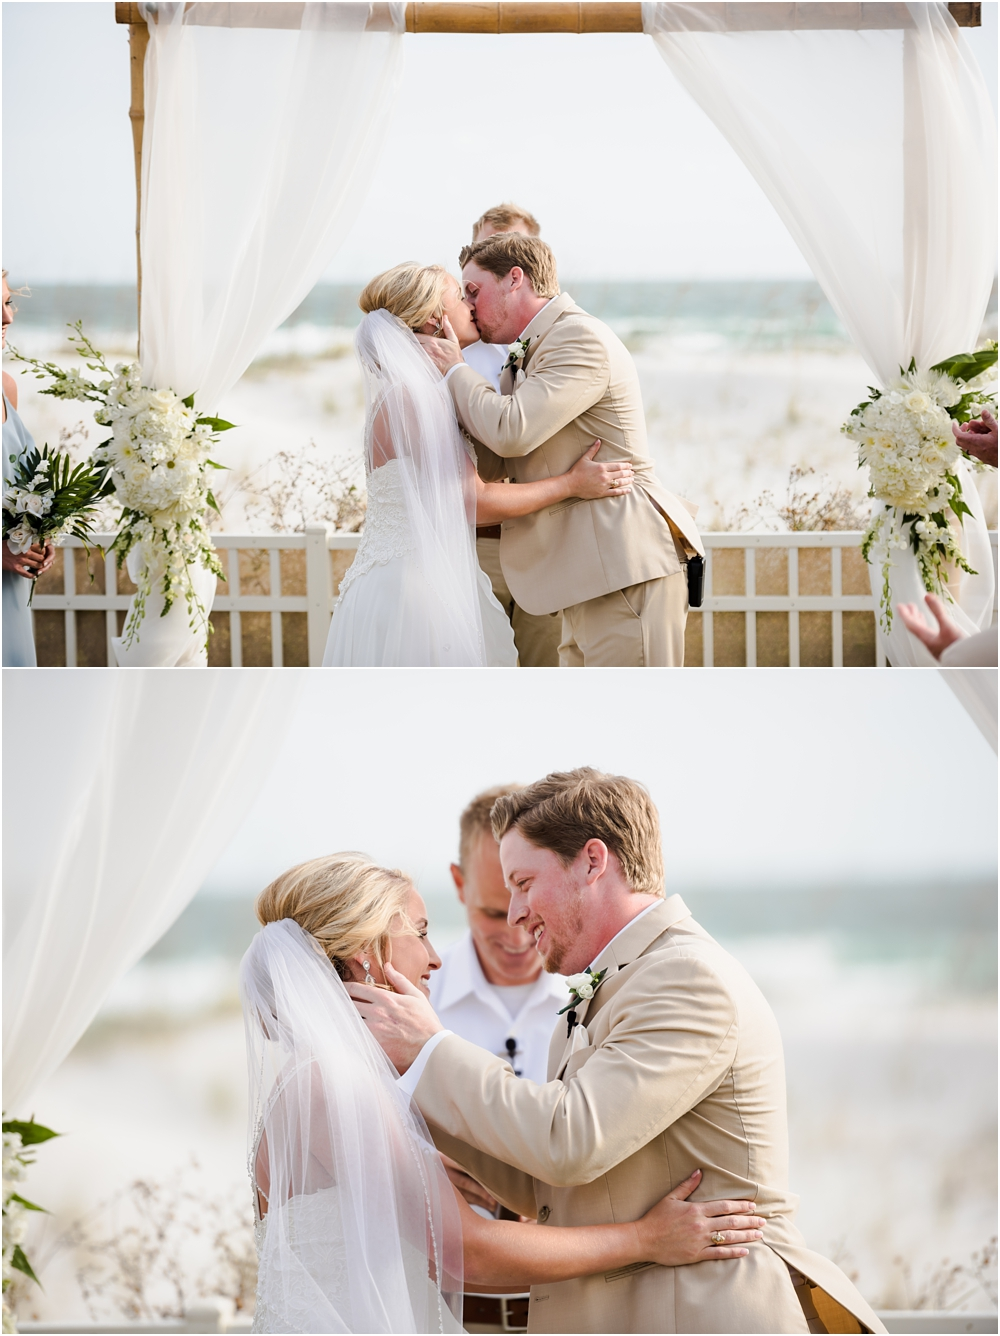 dillard-florida-wedding-photographer-panama-city-beach-dothan-tallahassee-kiersten-grant-photography-113.jpg